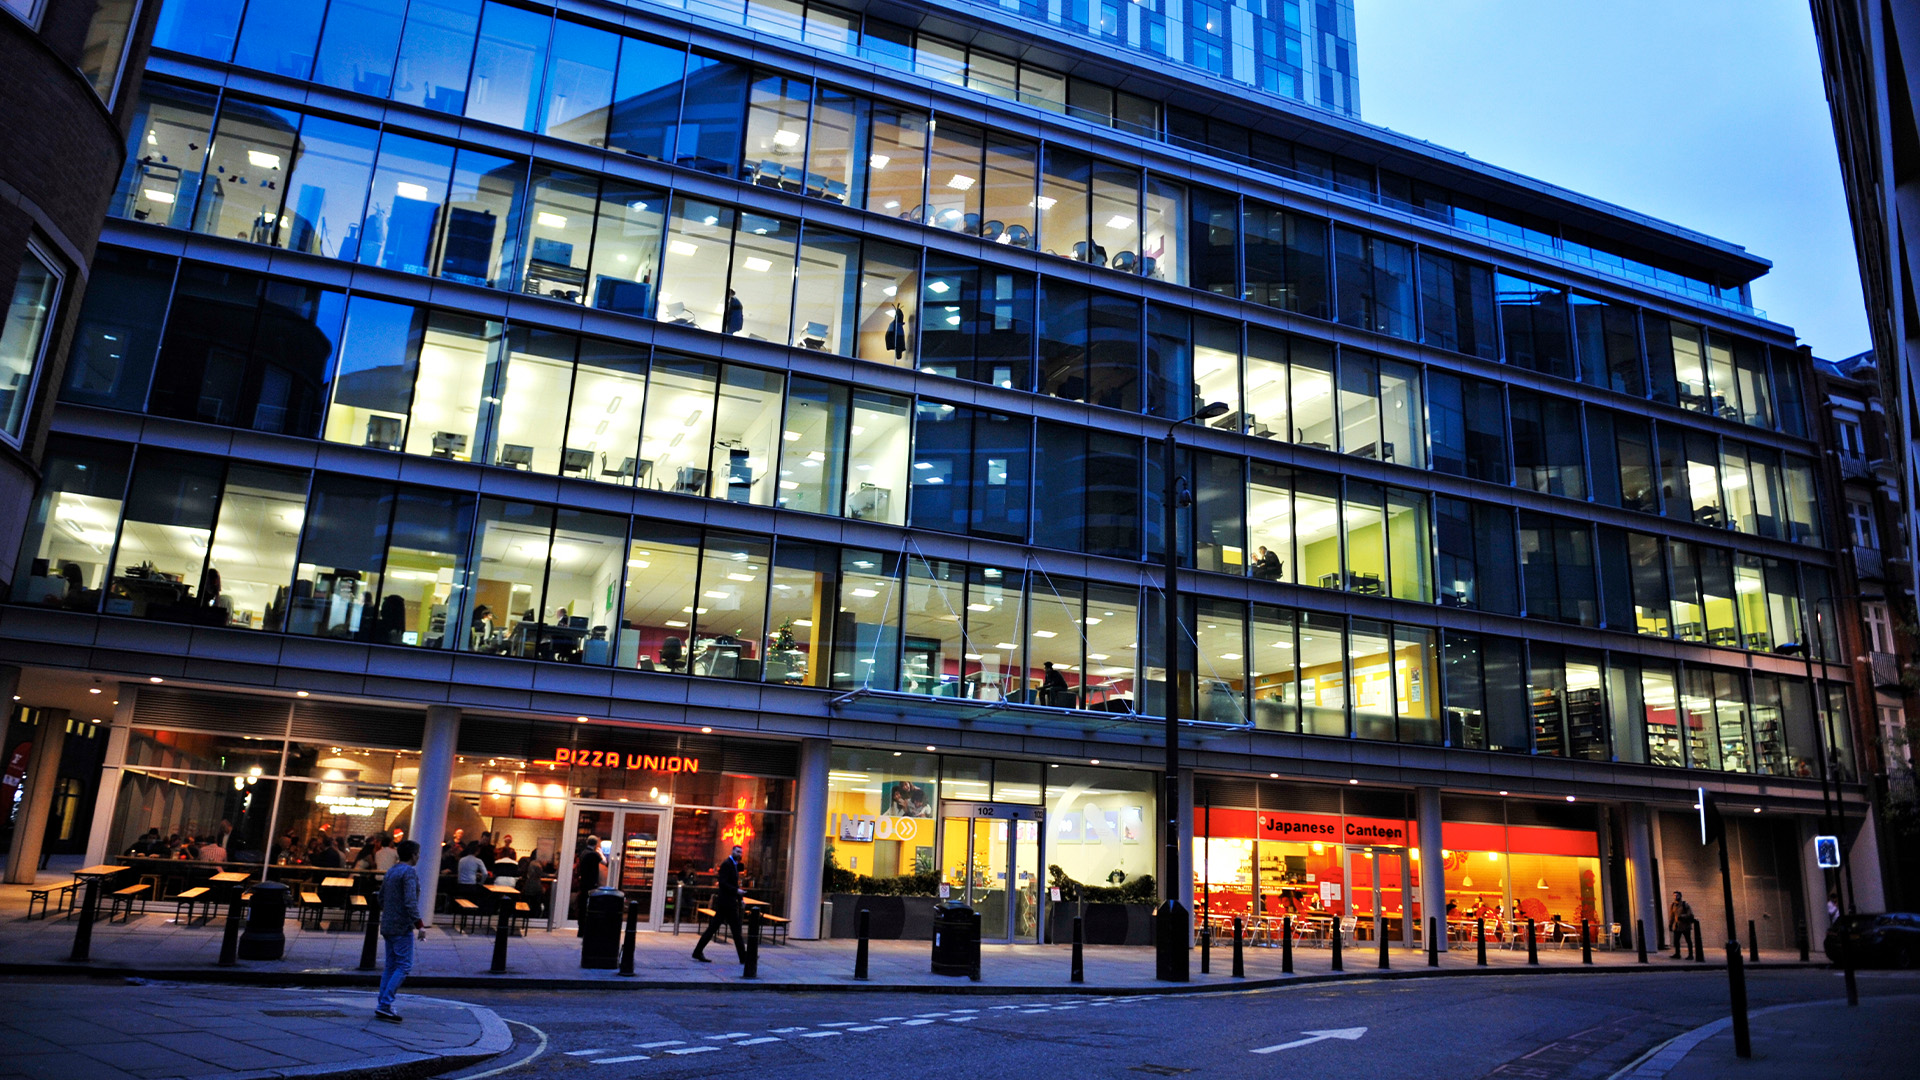 The modern INTO London campus is located in London's vibrant financial district